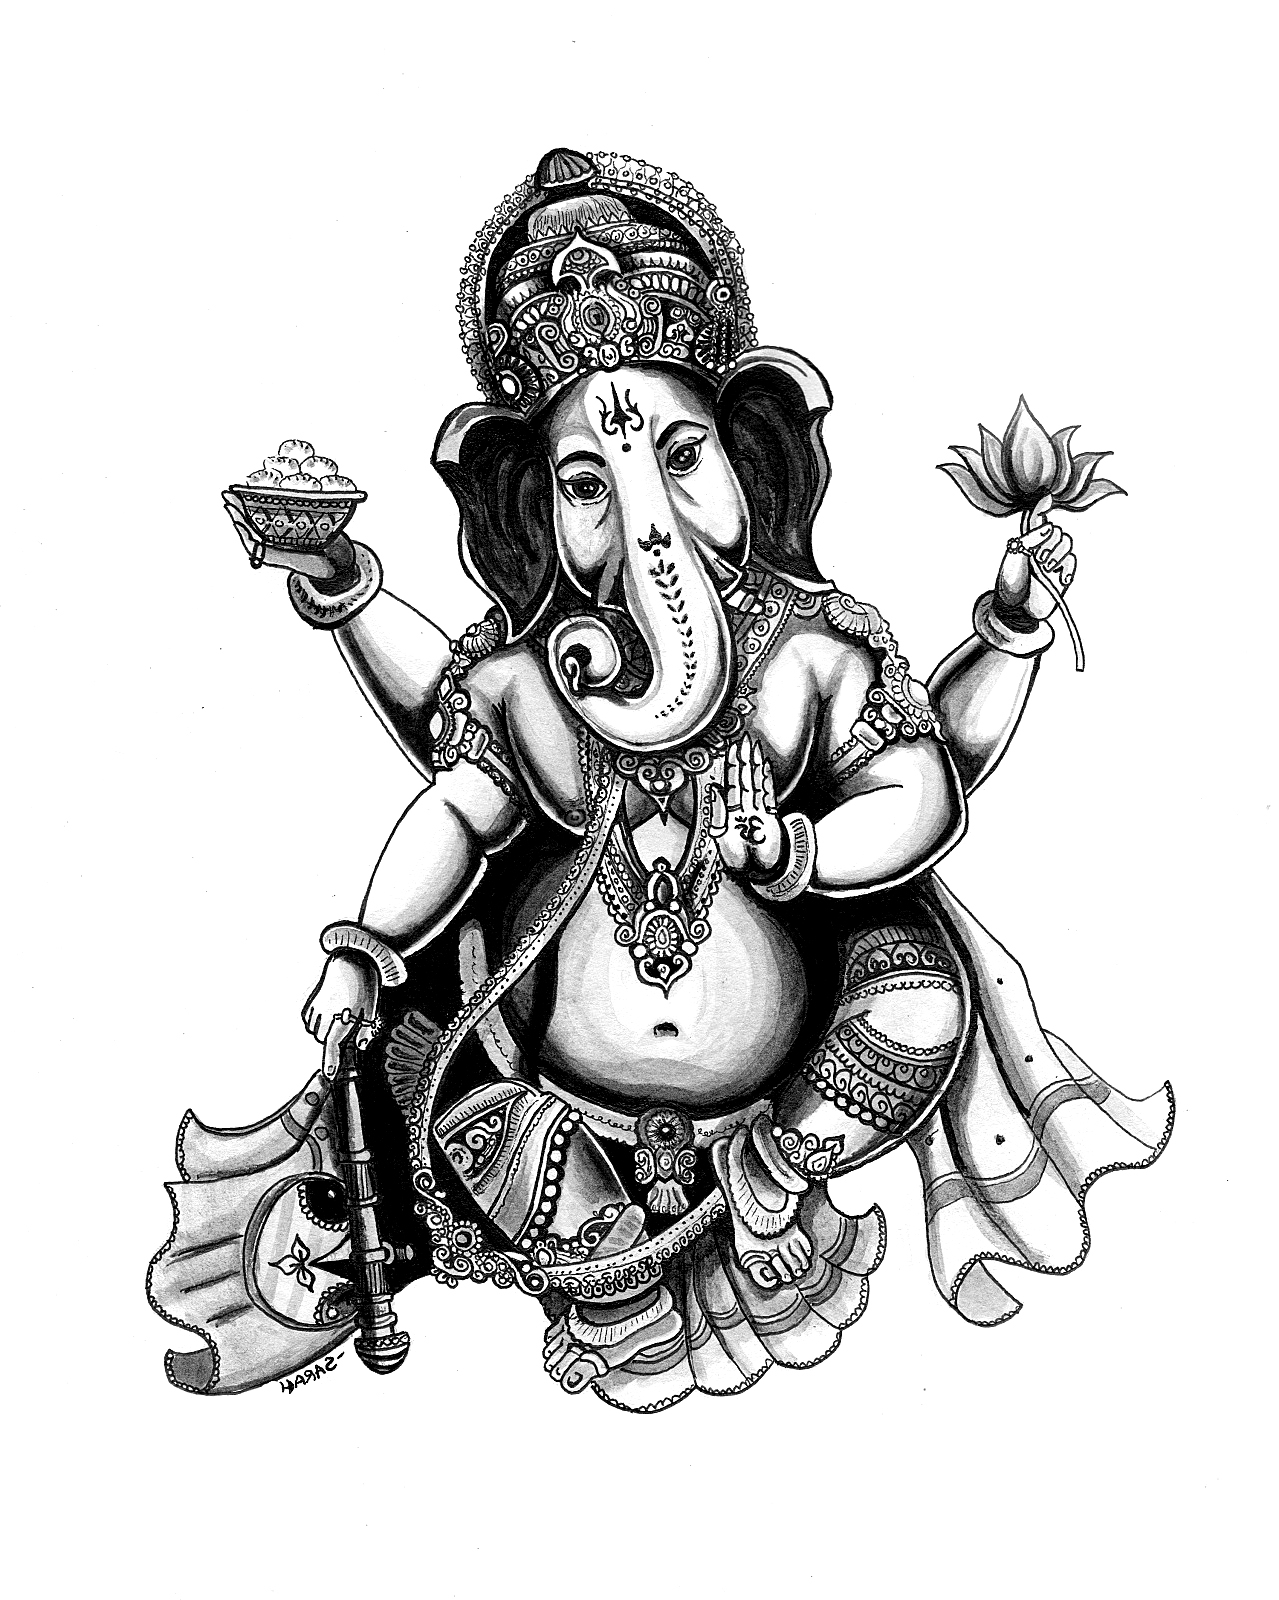 Coloriage A Imprimer Elephant Indien.Inde Ganesha Inde Bollywood Coloriages Difficiles Pour Adultes